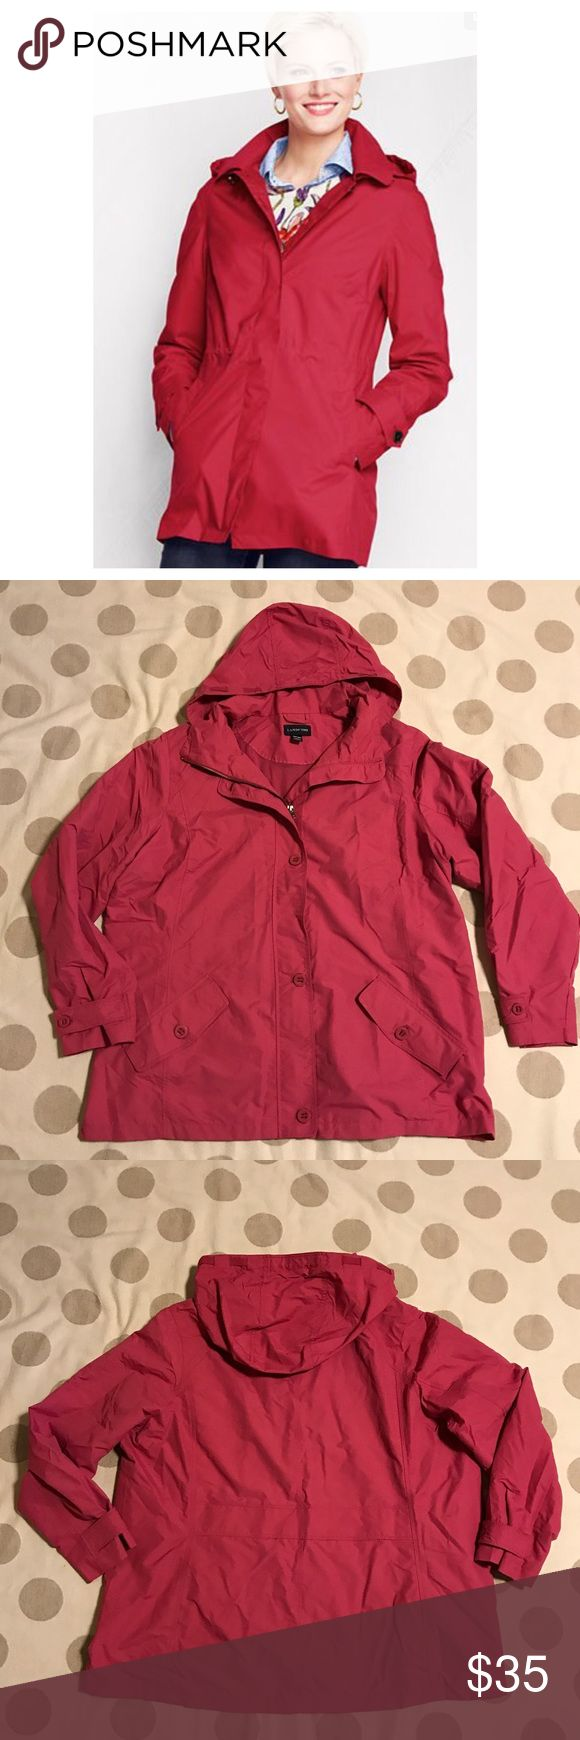 Lands' End pink Storm Raker rain jacket You're looking at a gently loved Lands' End women's rain jacket in size 2x or 22-24. Similar to the cover pic. This one is a pretty pink. It zips up and also has button details and buttoned pockets. Hood is removable. 💙offers 💙20% off discount on bundles Lands' End Jackets & Coats